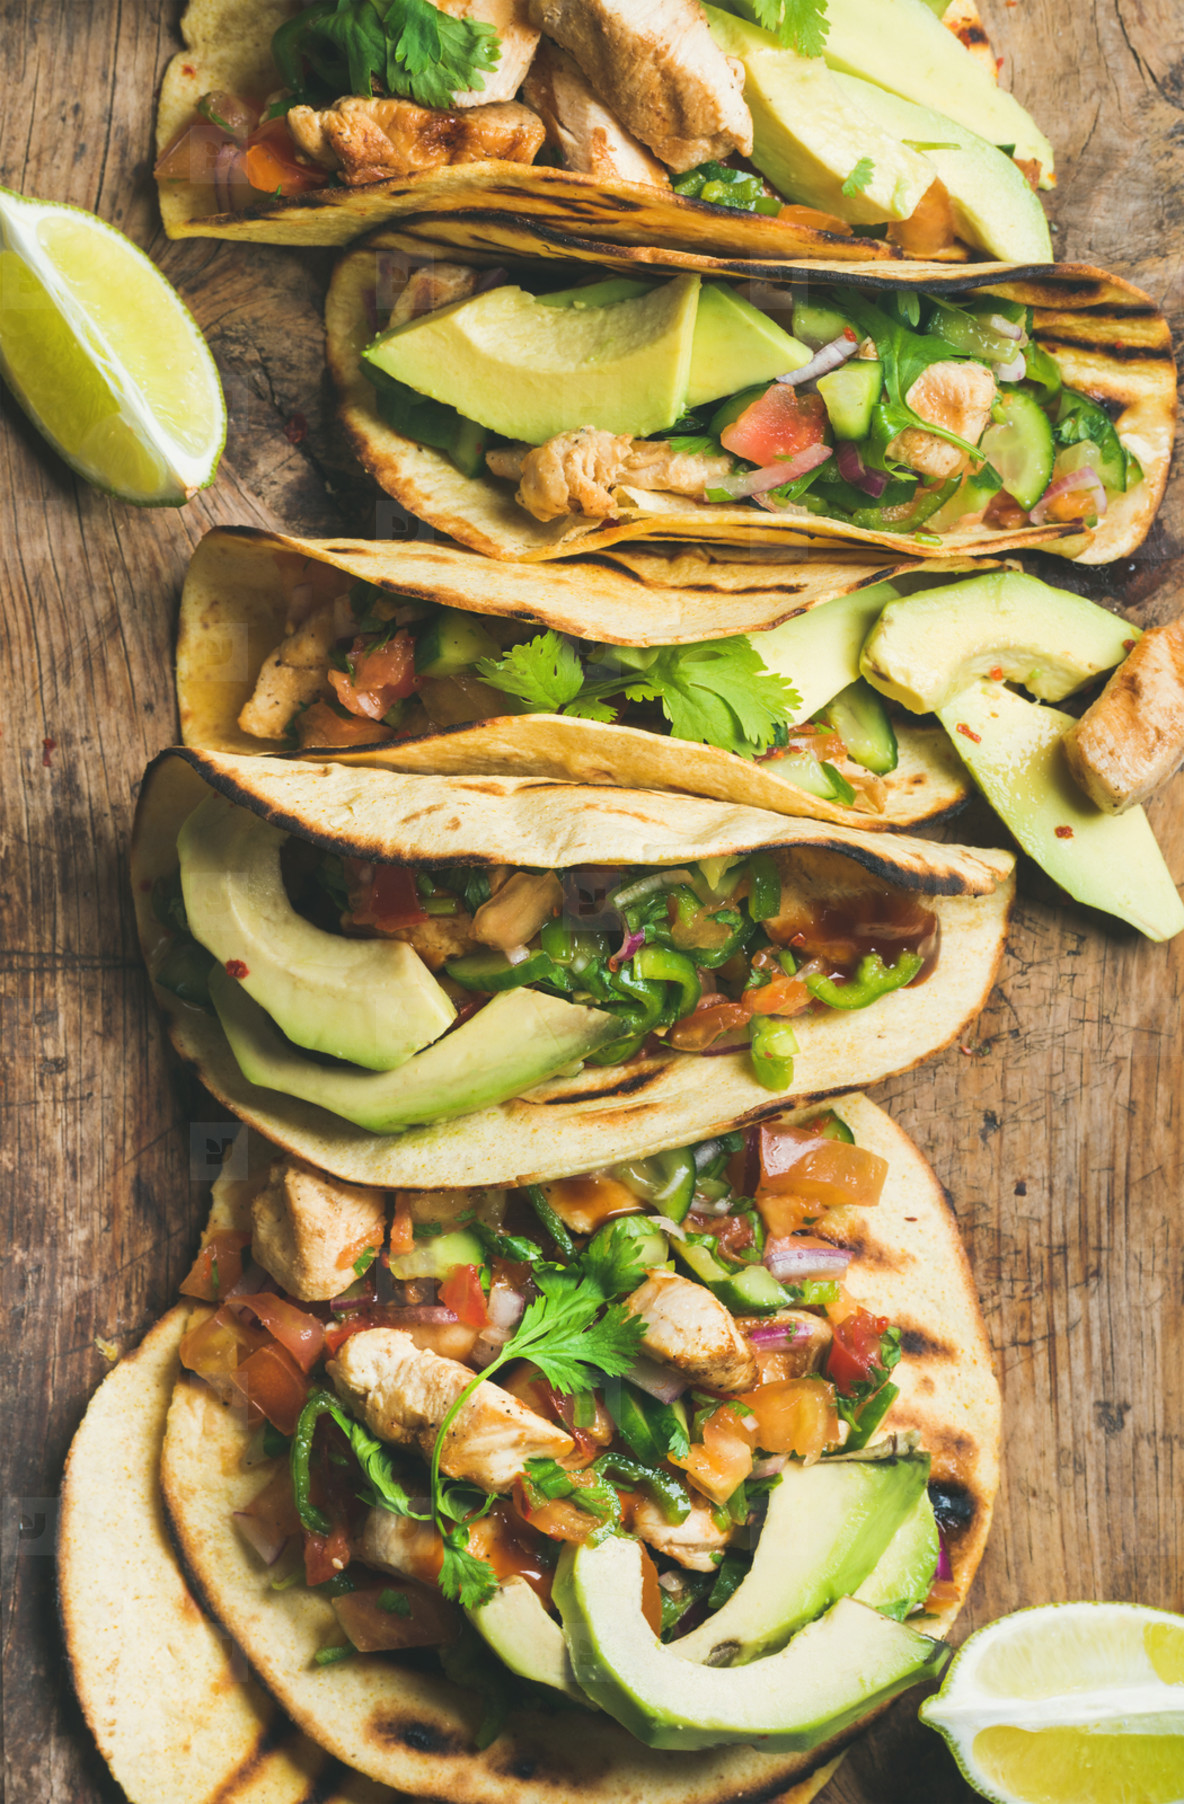 Tacos with grilled chicken  avocado  fresh salsa and limes